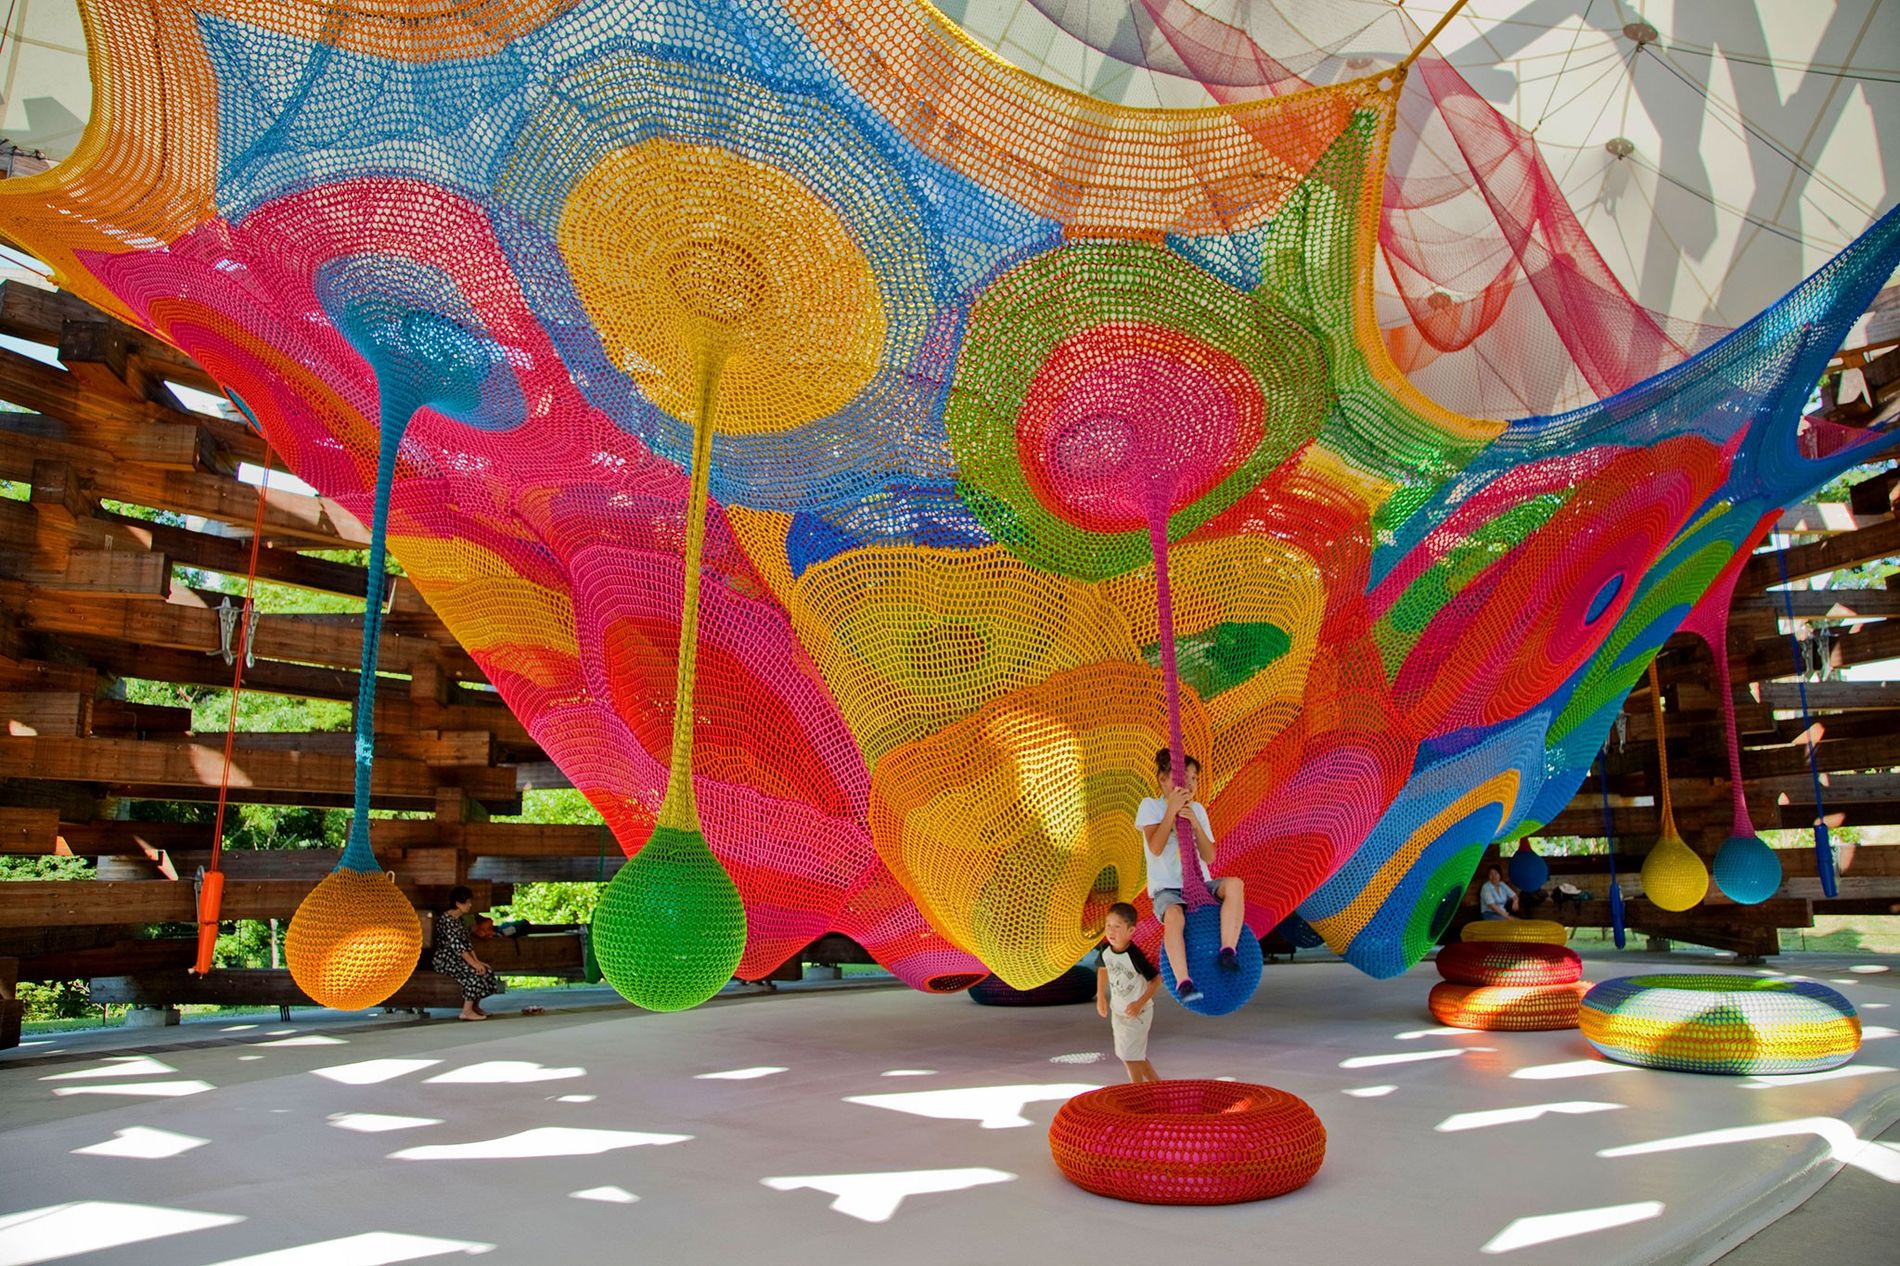 Hakone's open air museum inspires children with its use of light and colour.